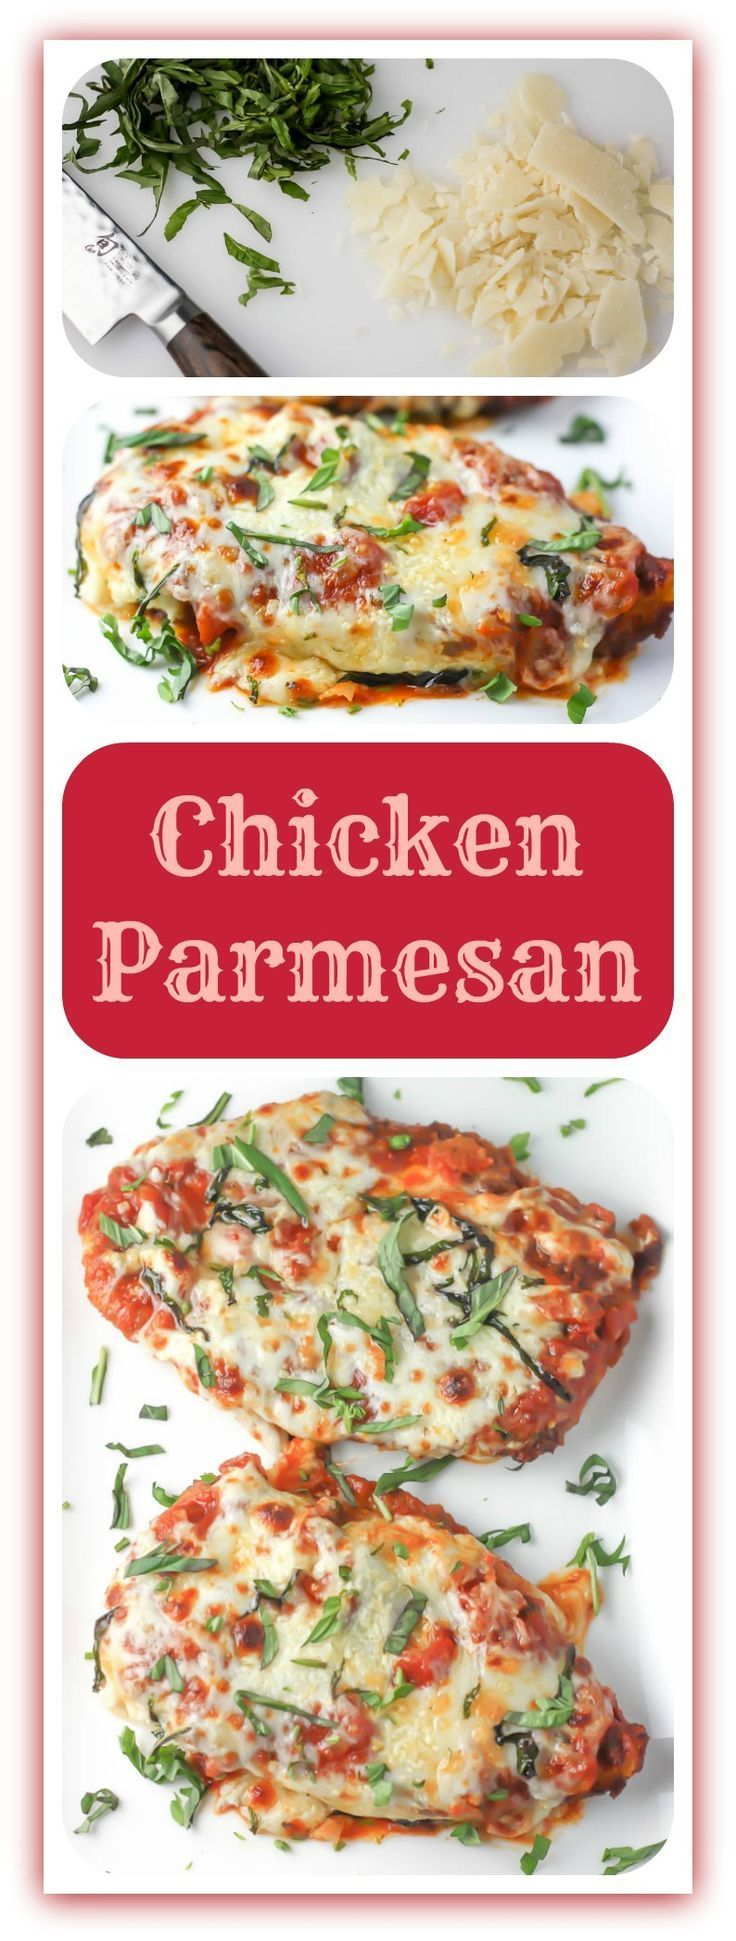 BREADED CHICKEN BREASTS SMOTHERED IN TOMATO SAUCE, PARMESAN AND MOZZARELLA CHEESE, THEN BAKED UNTIL MELTED AND GOLDEN.